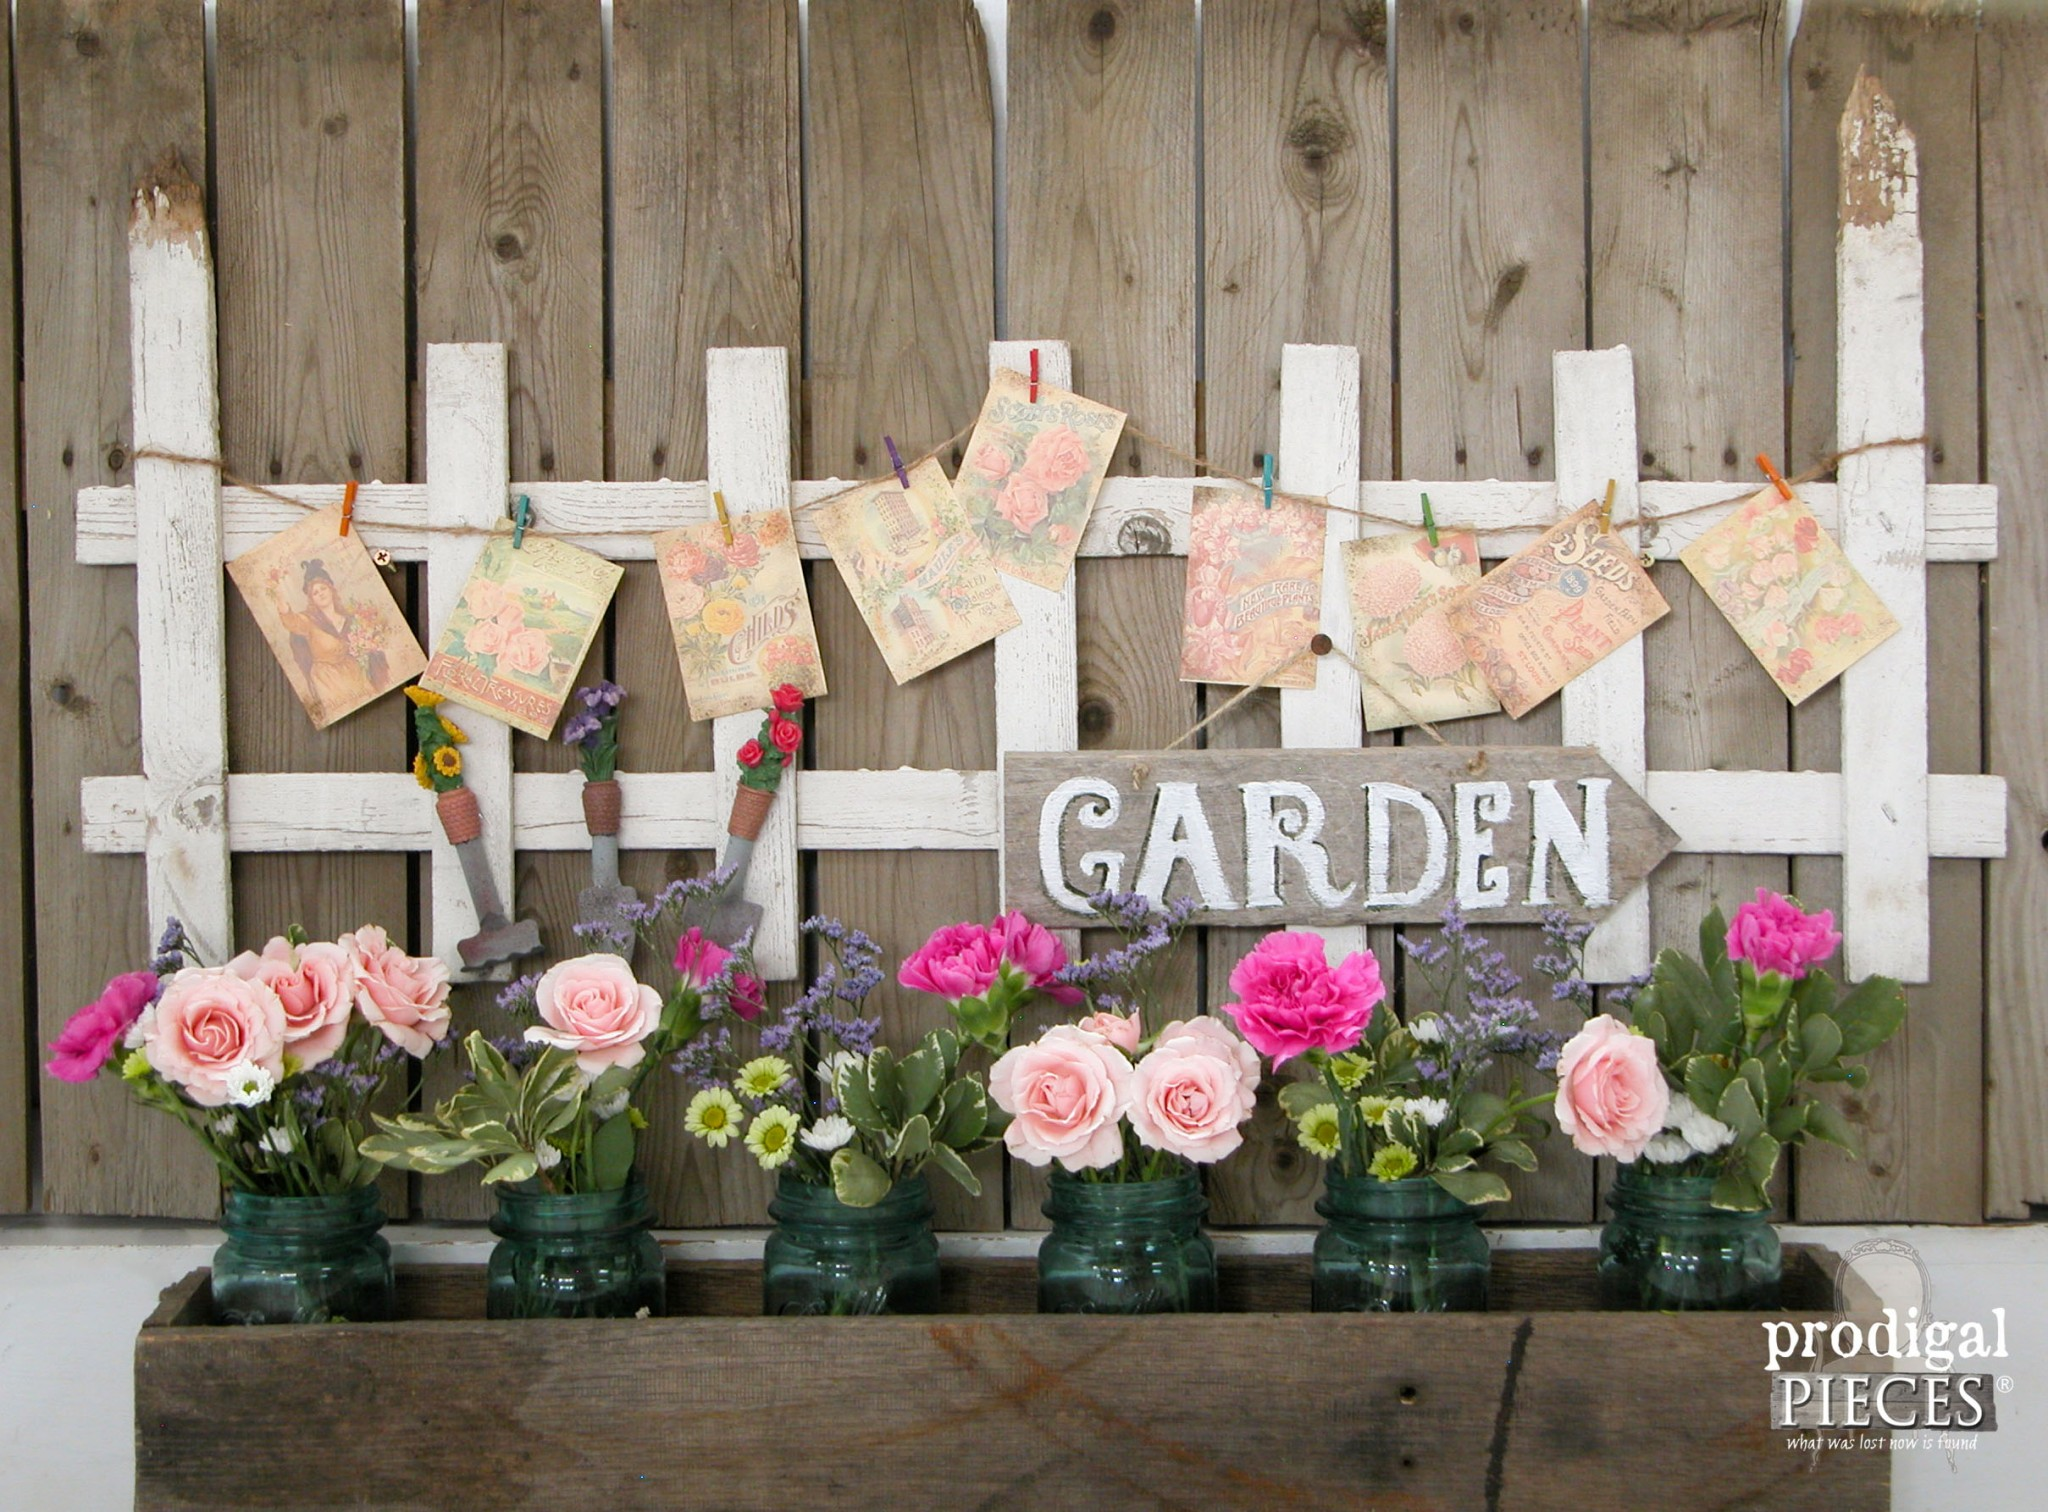 Repurposed Garden Decor From Curbside Picket Fence By Prodigal Pieces |  Www.prodigalpieces.com